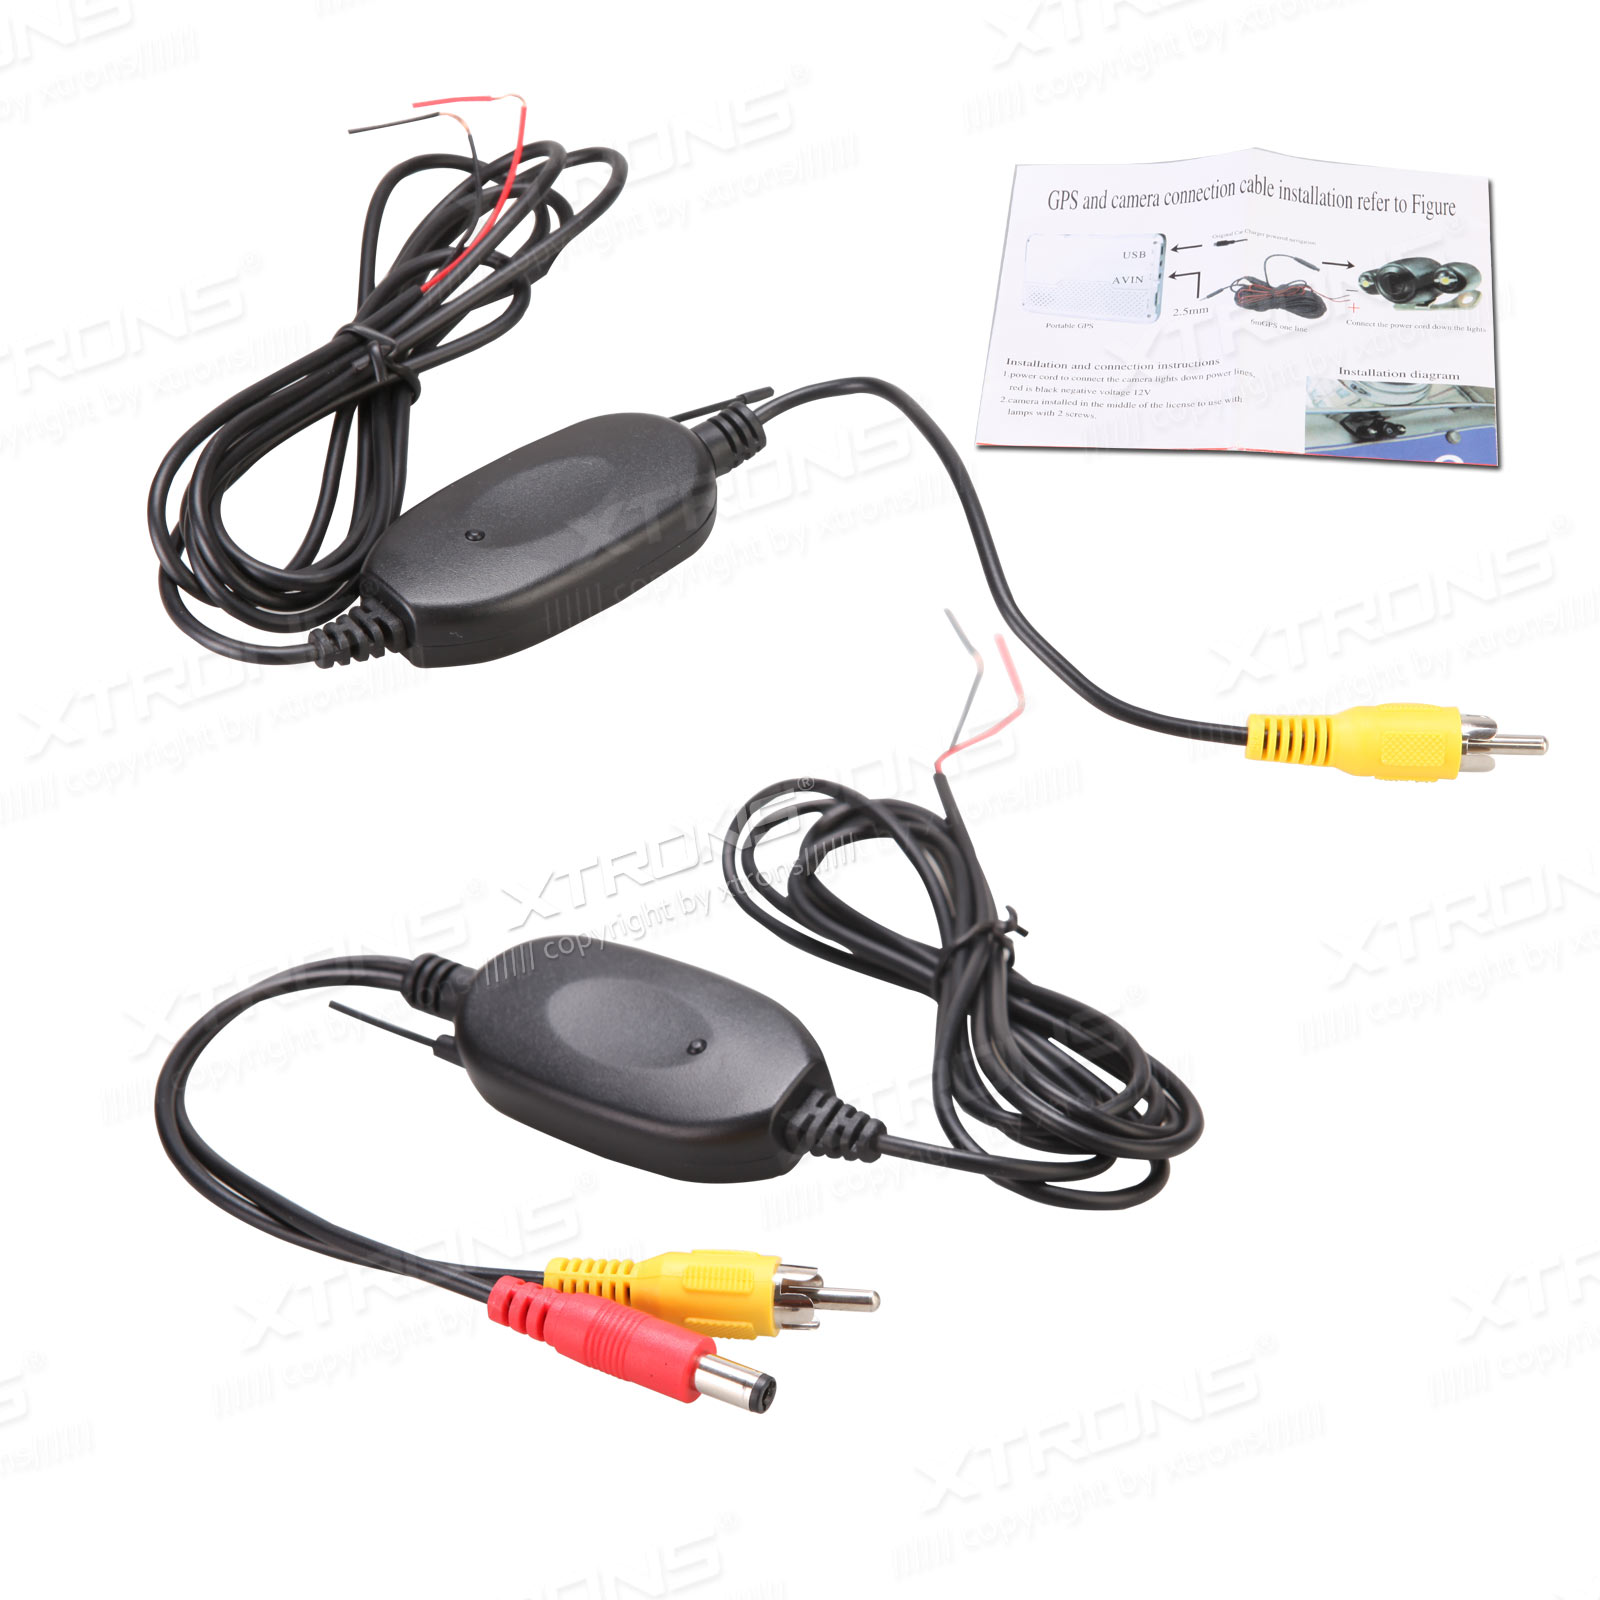 Wiring Diagram Car Reversing Camera Electrical Diagrams Xtrons Rca Reverse Find U2022 Night Vision